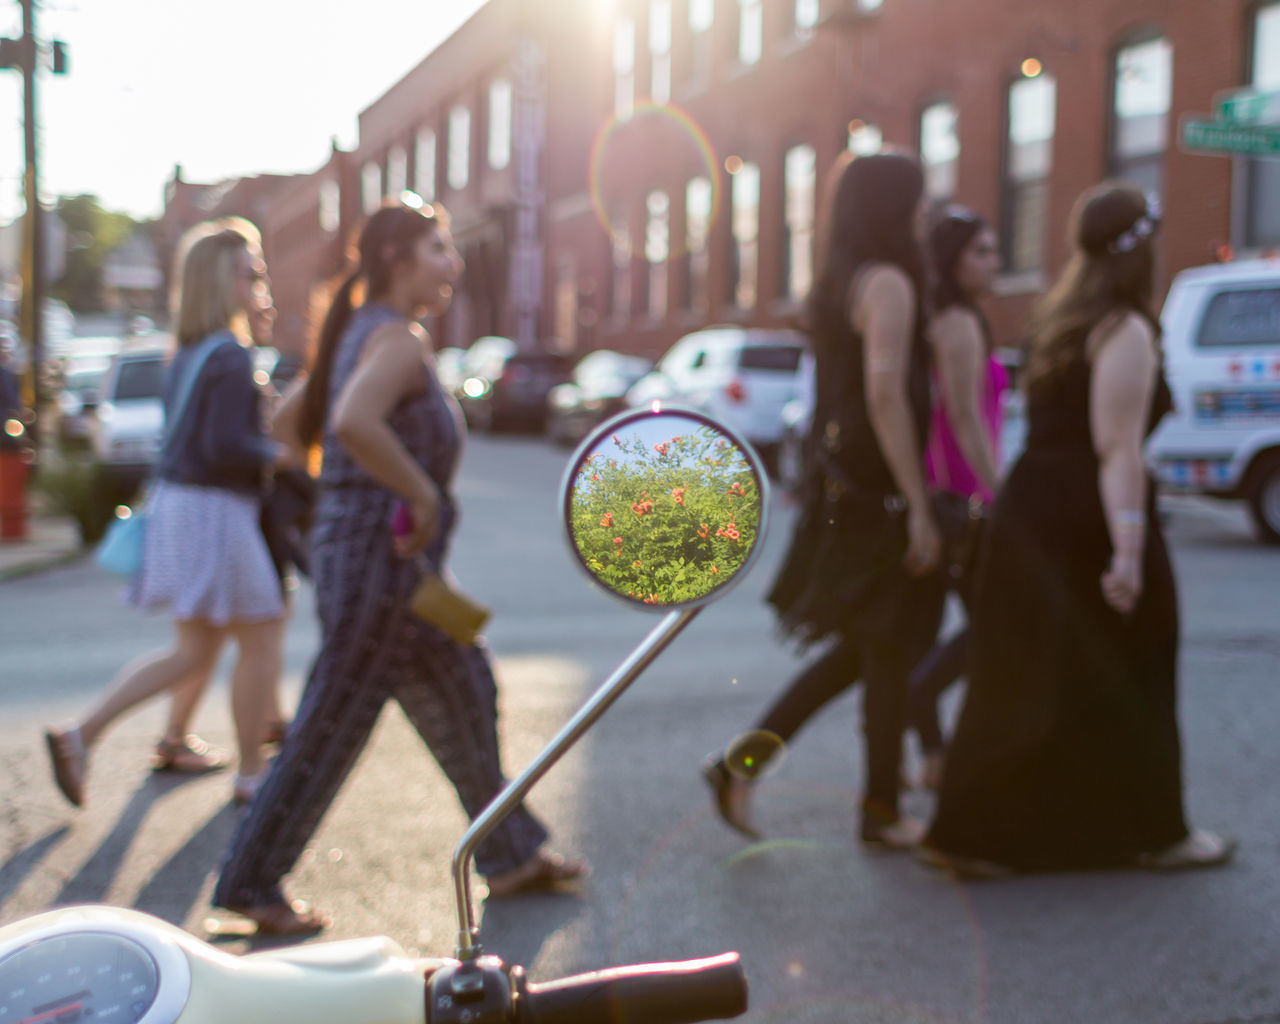 Women crossing street with flowers reflecting on rear-view mirror of motor scooter